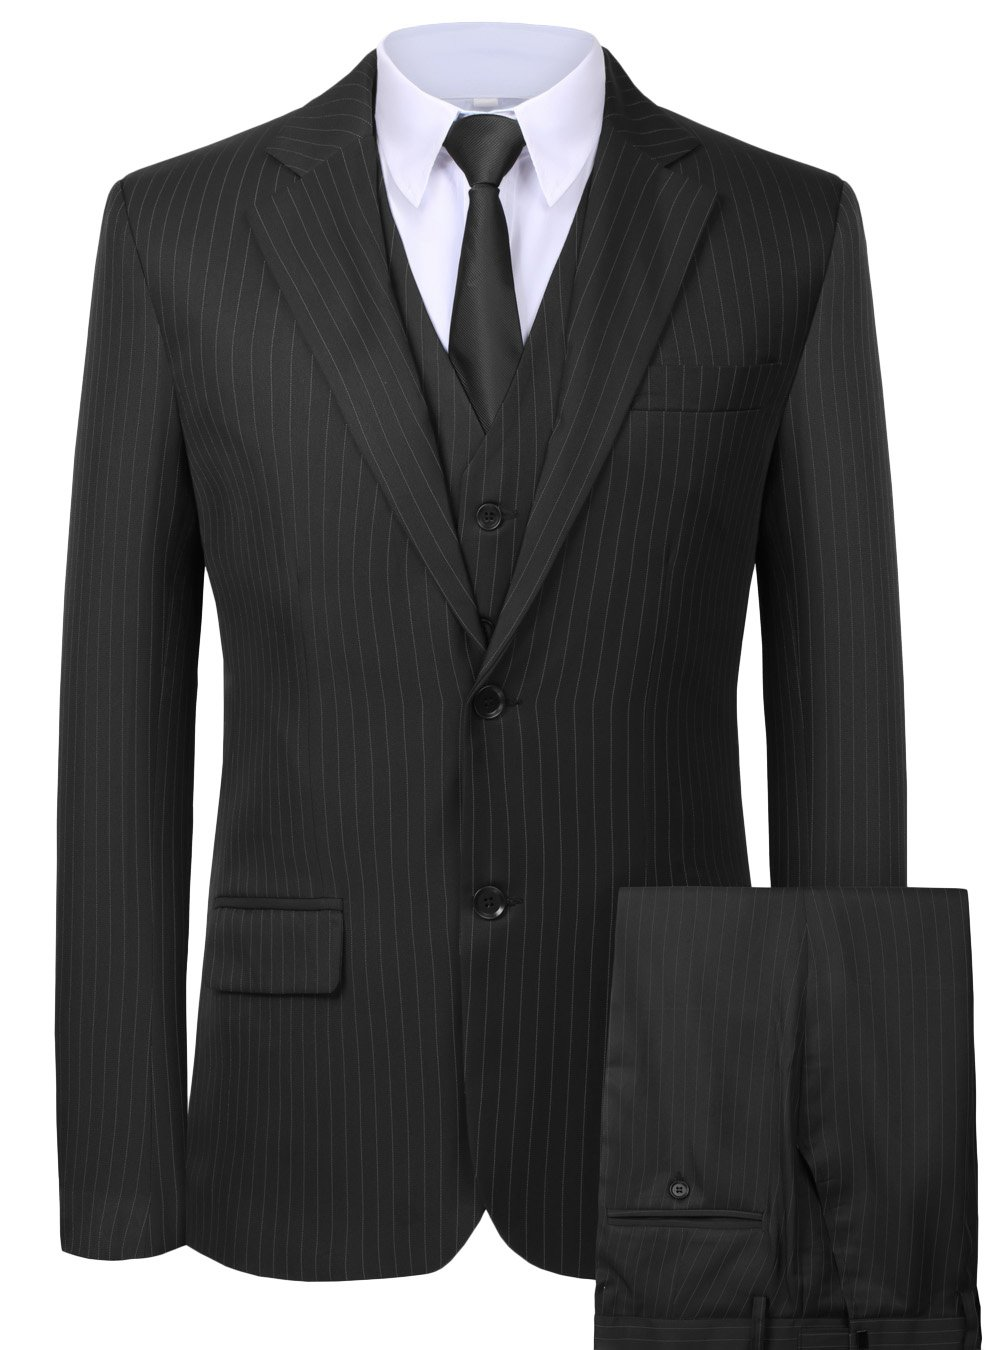 Hanayome Men's 3 Pieces Business Suits Slim Fit Stripe Blazer Jacket Vest Pants Set SI137 (Black,52)